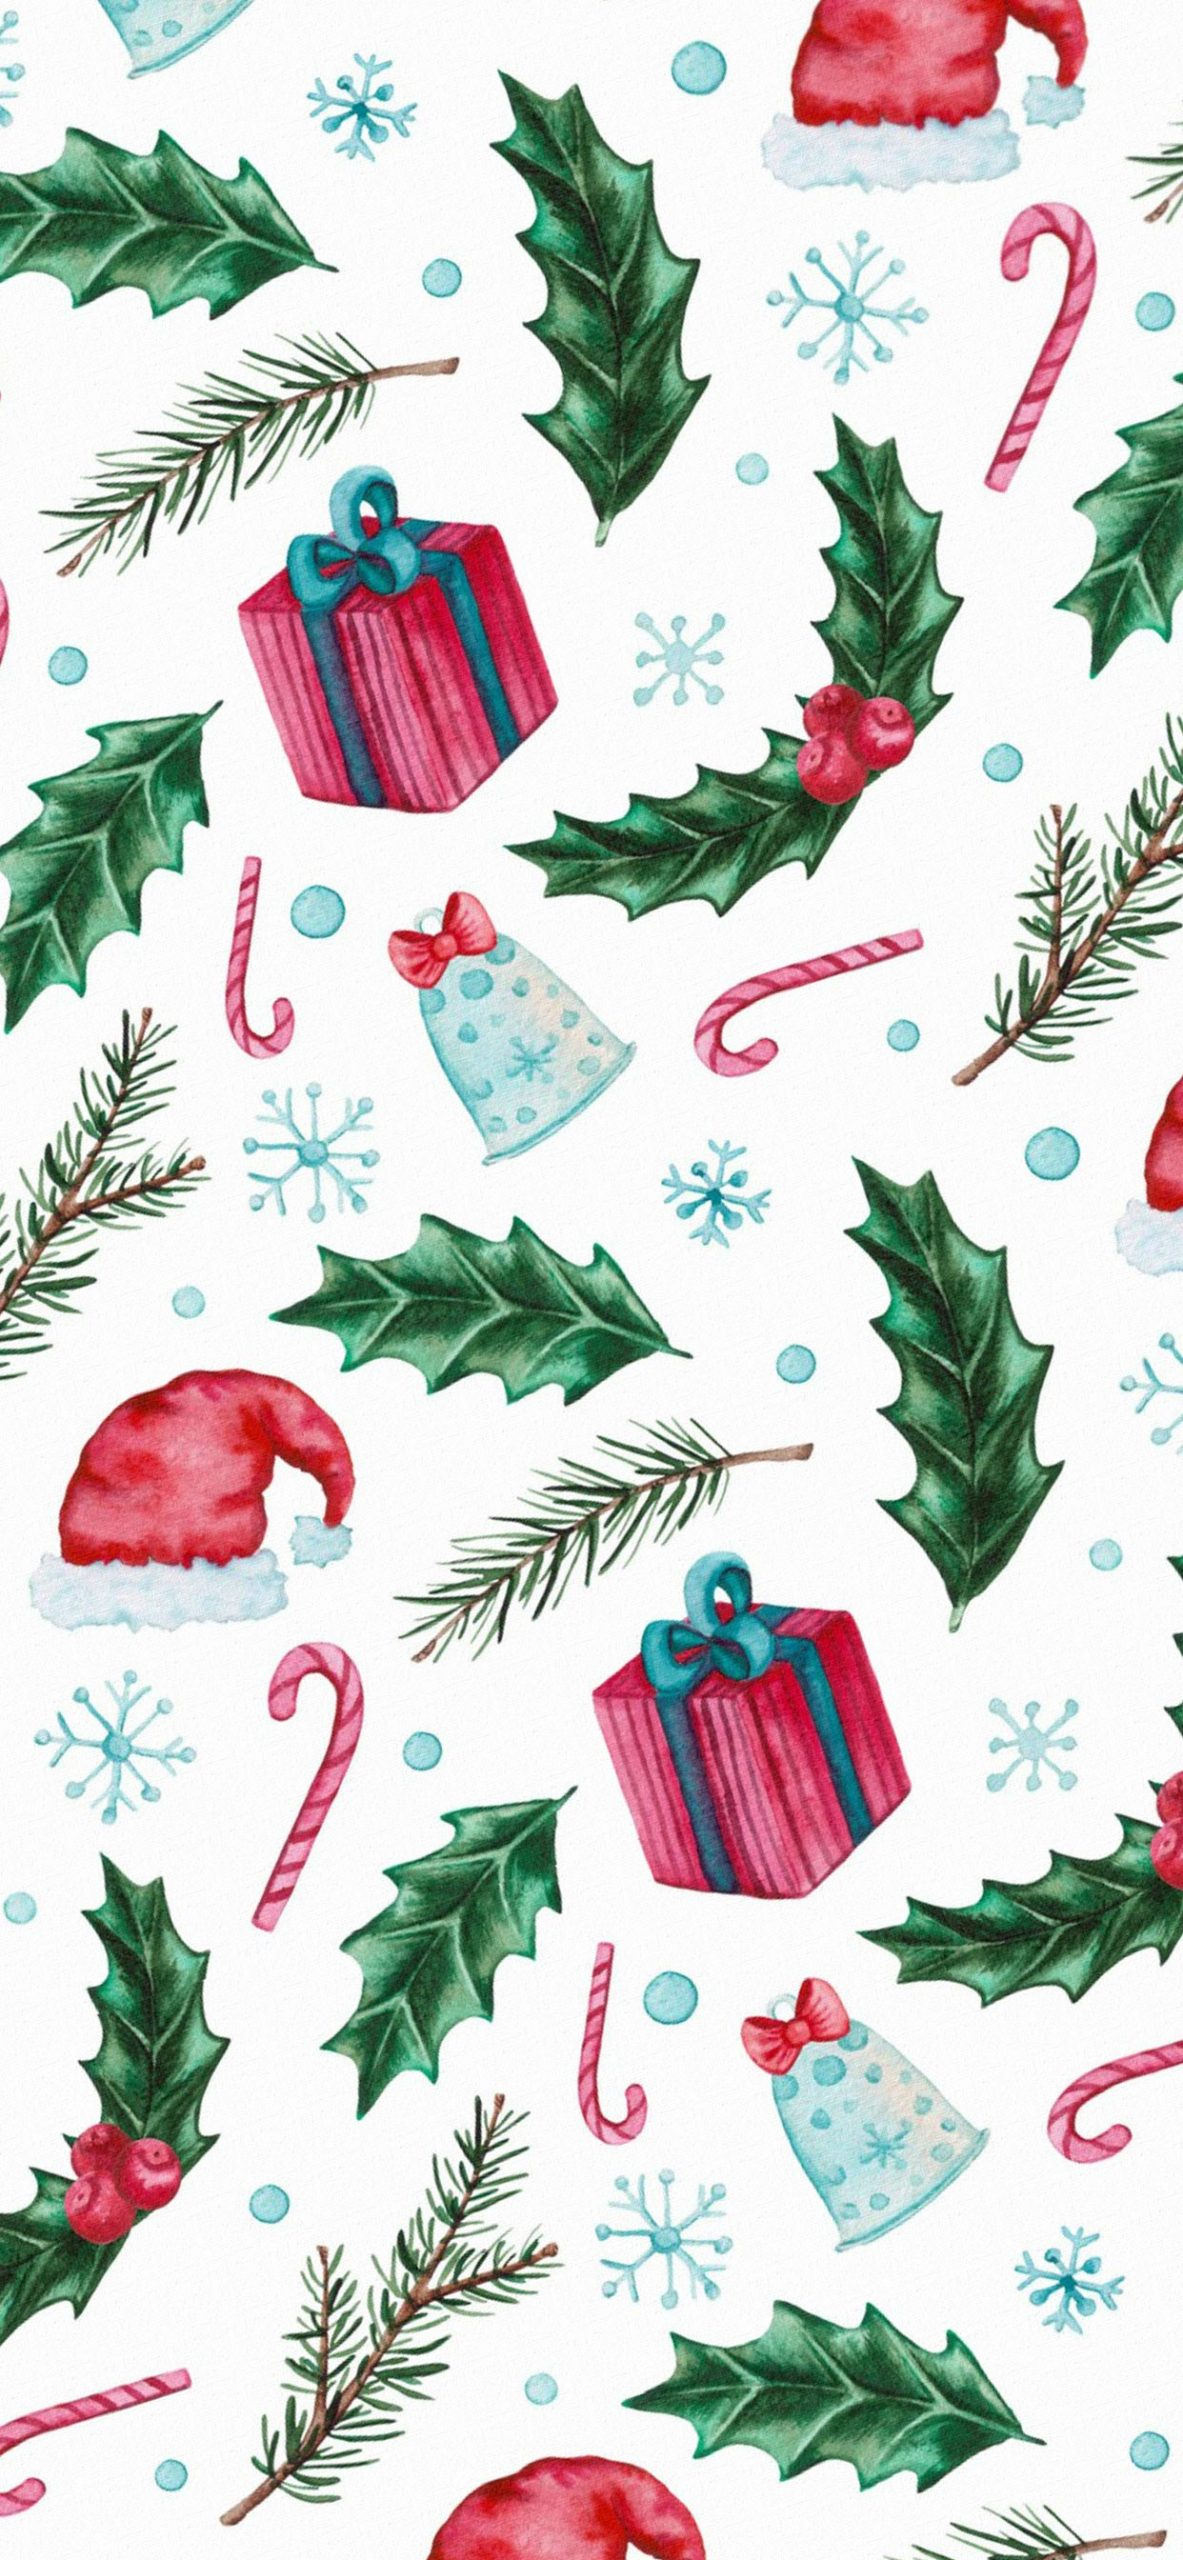 hwiThh christmas background wallpaper iphone